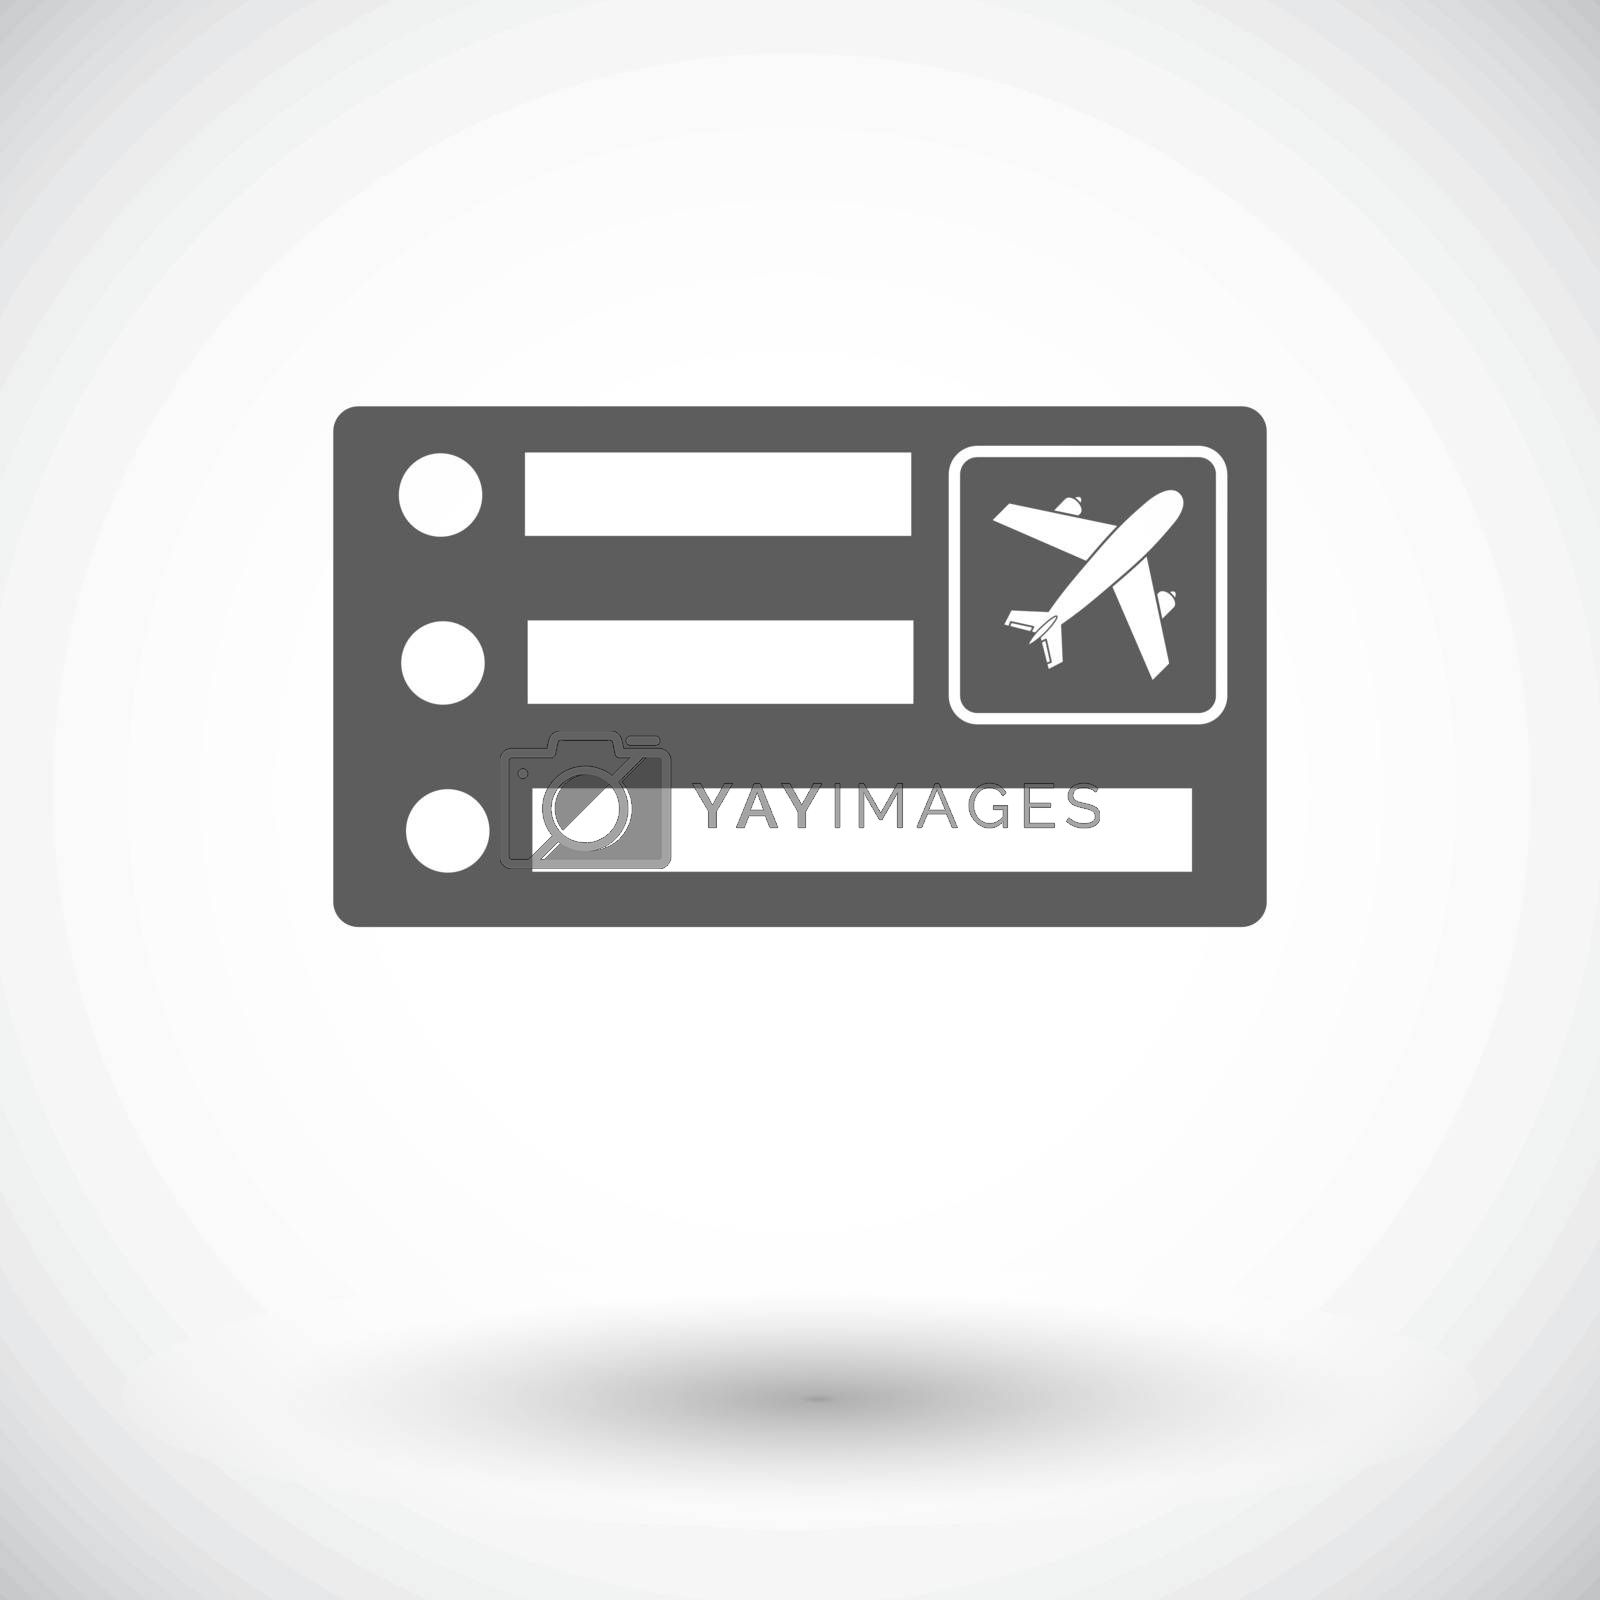 Air ticket. Single flat icon on white background. Vector illustration.